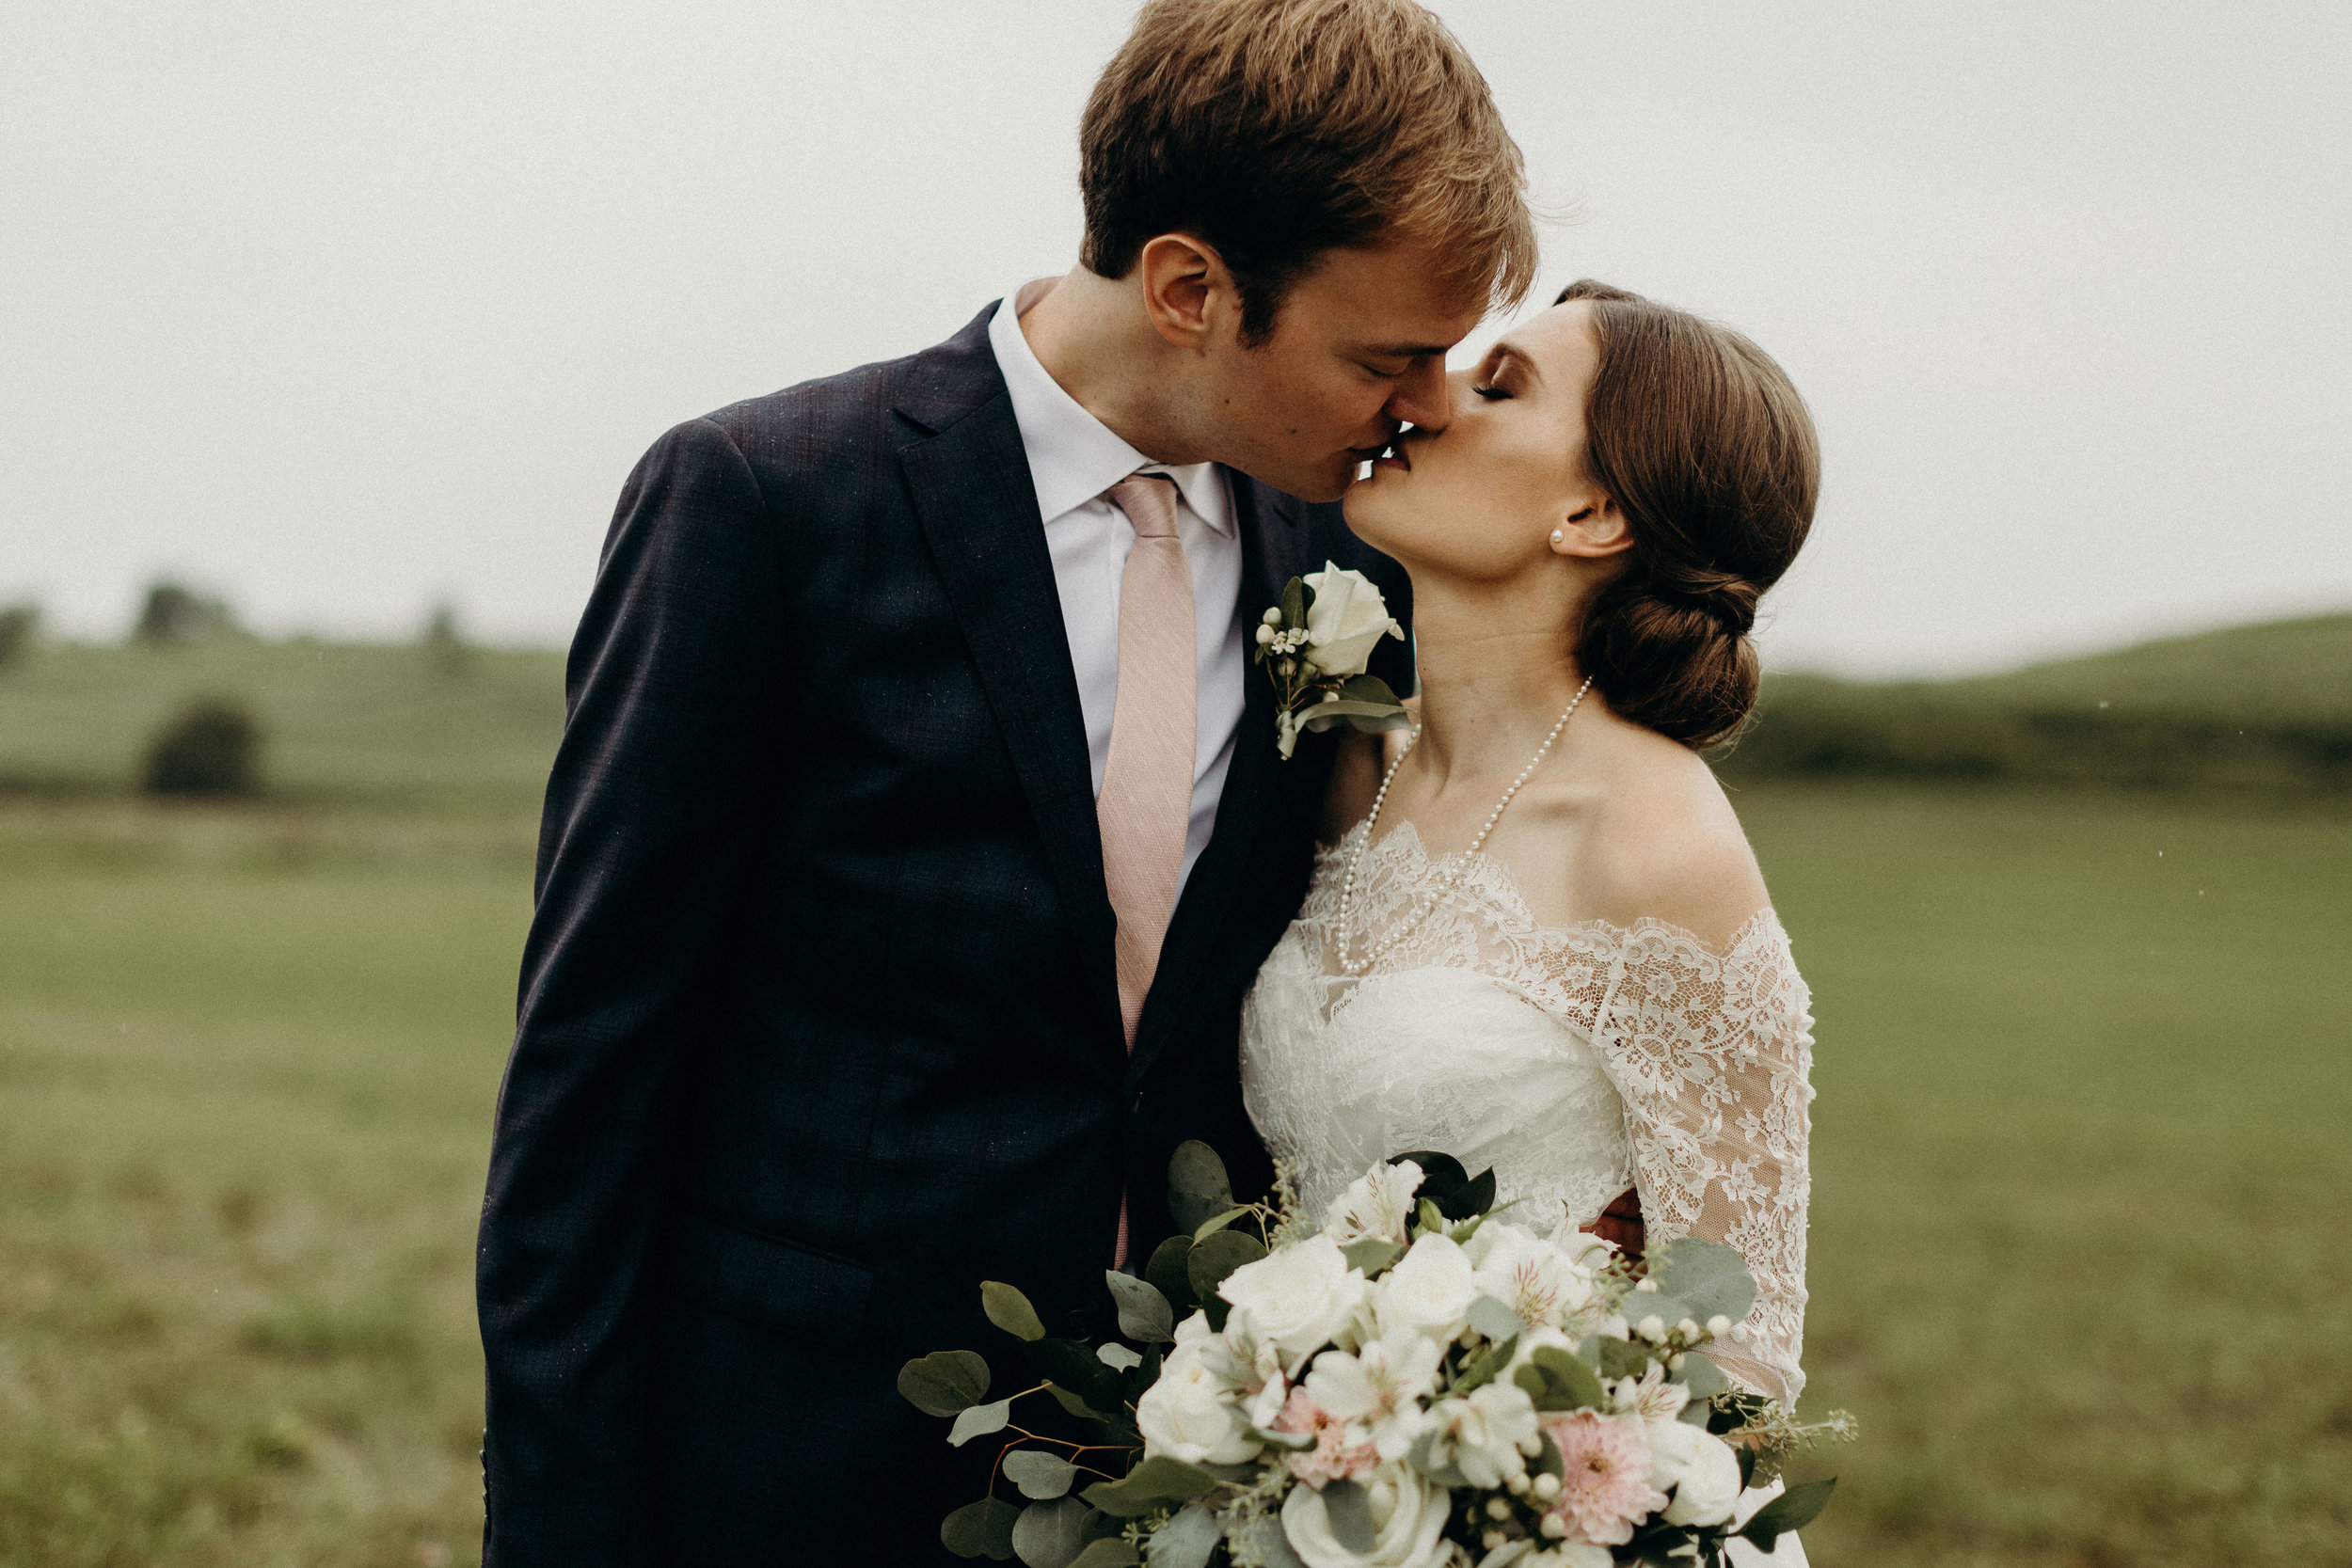 Bride and groom kiss before their wedding